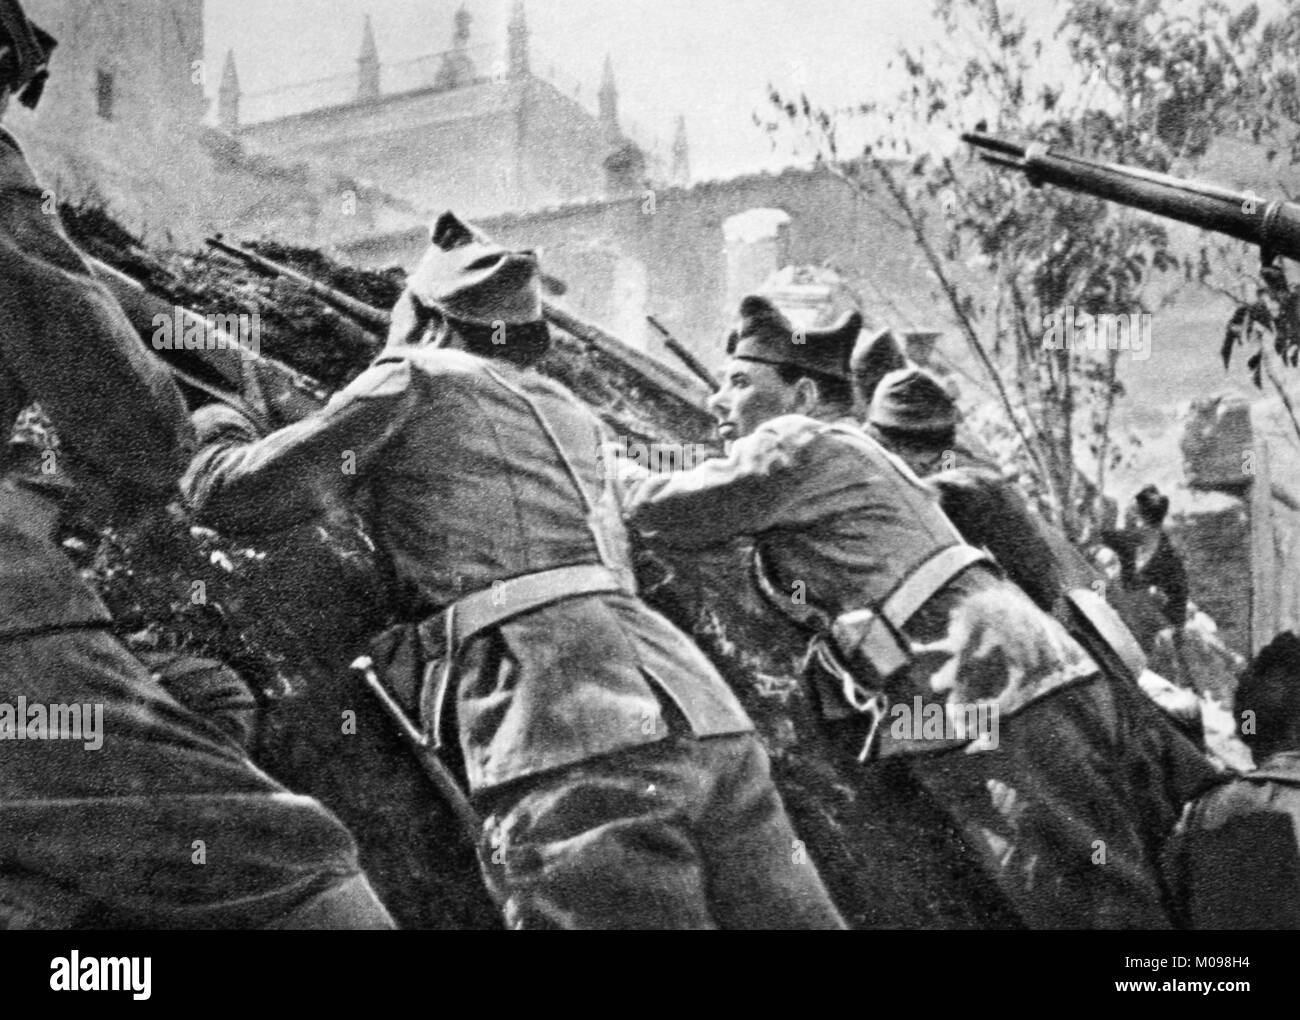 Troops of the Second Spanish Republic posted in front of the Alcázar of Toledo during the early months - Stock Image